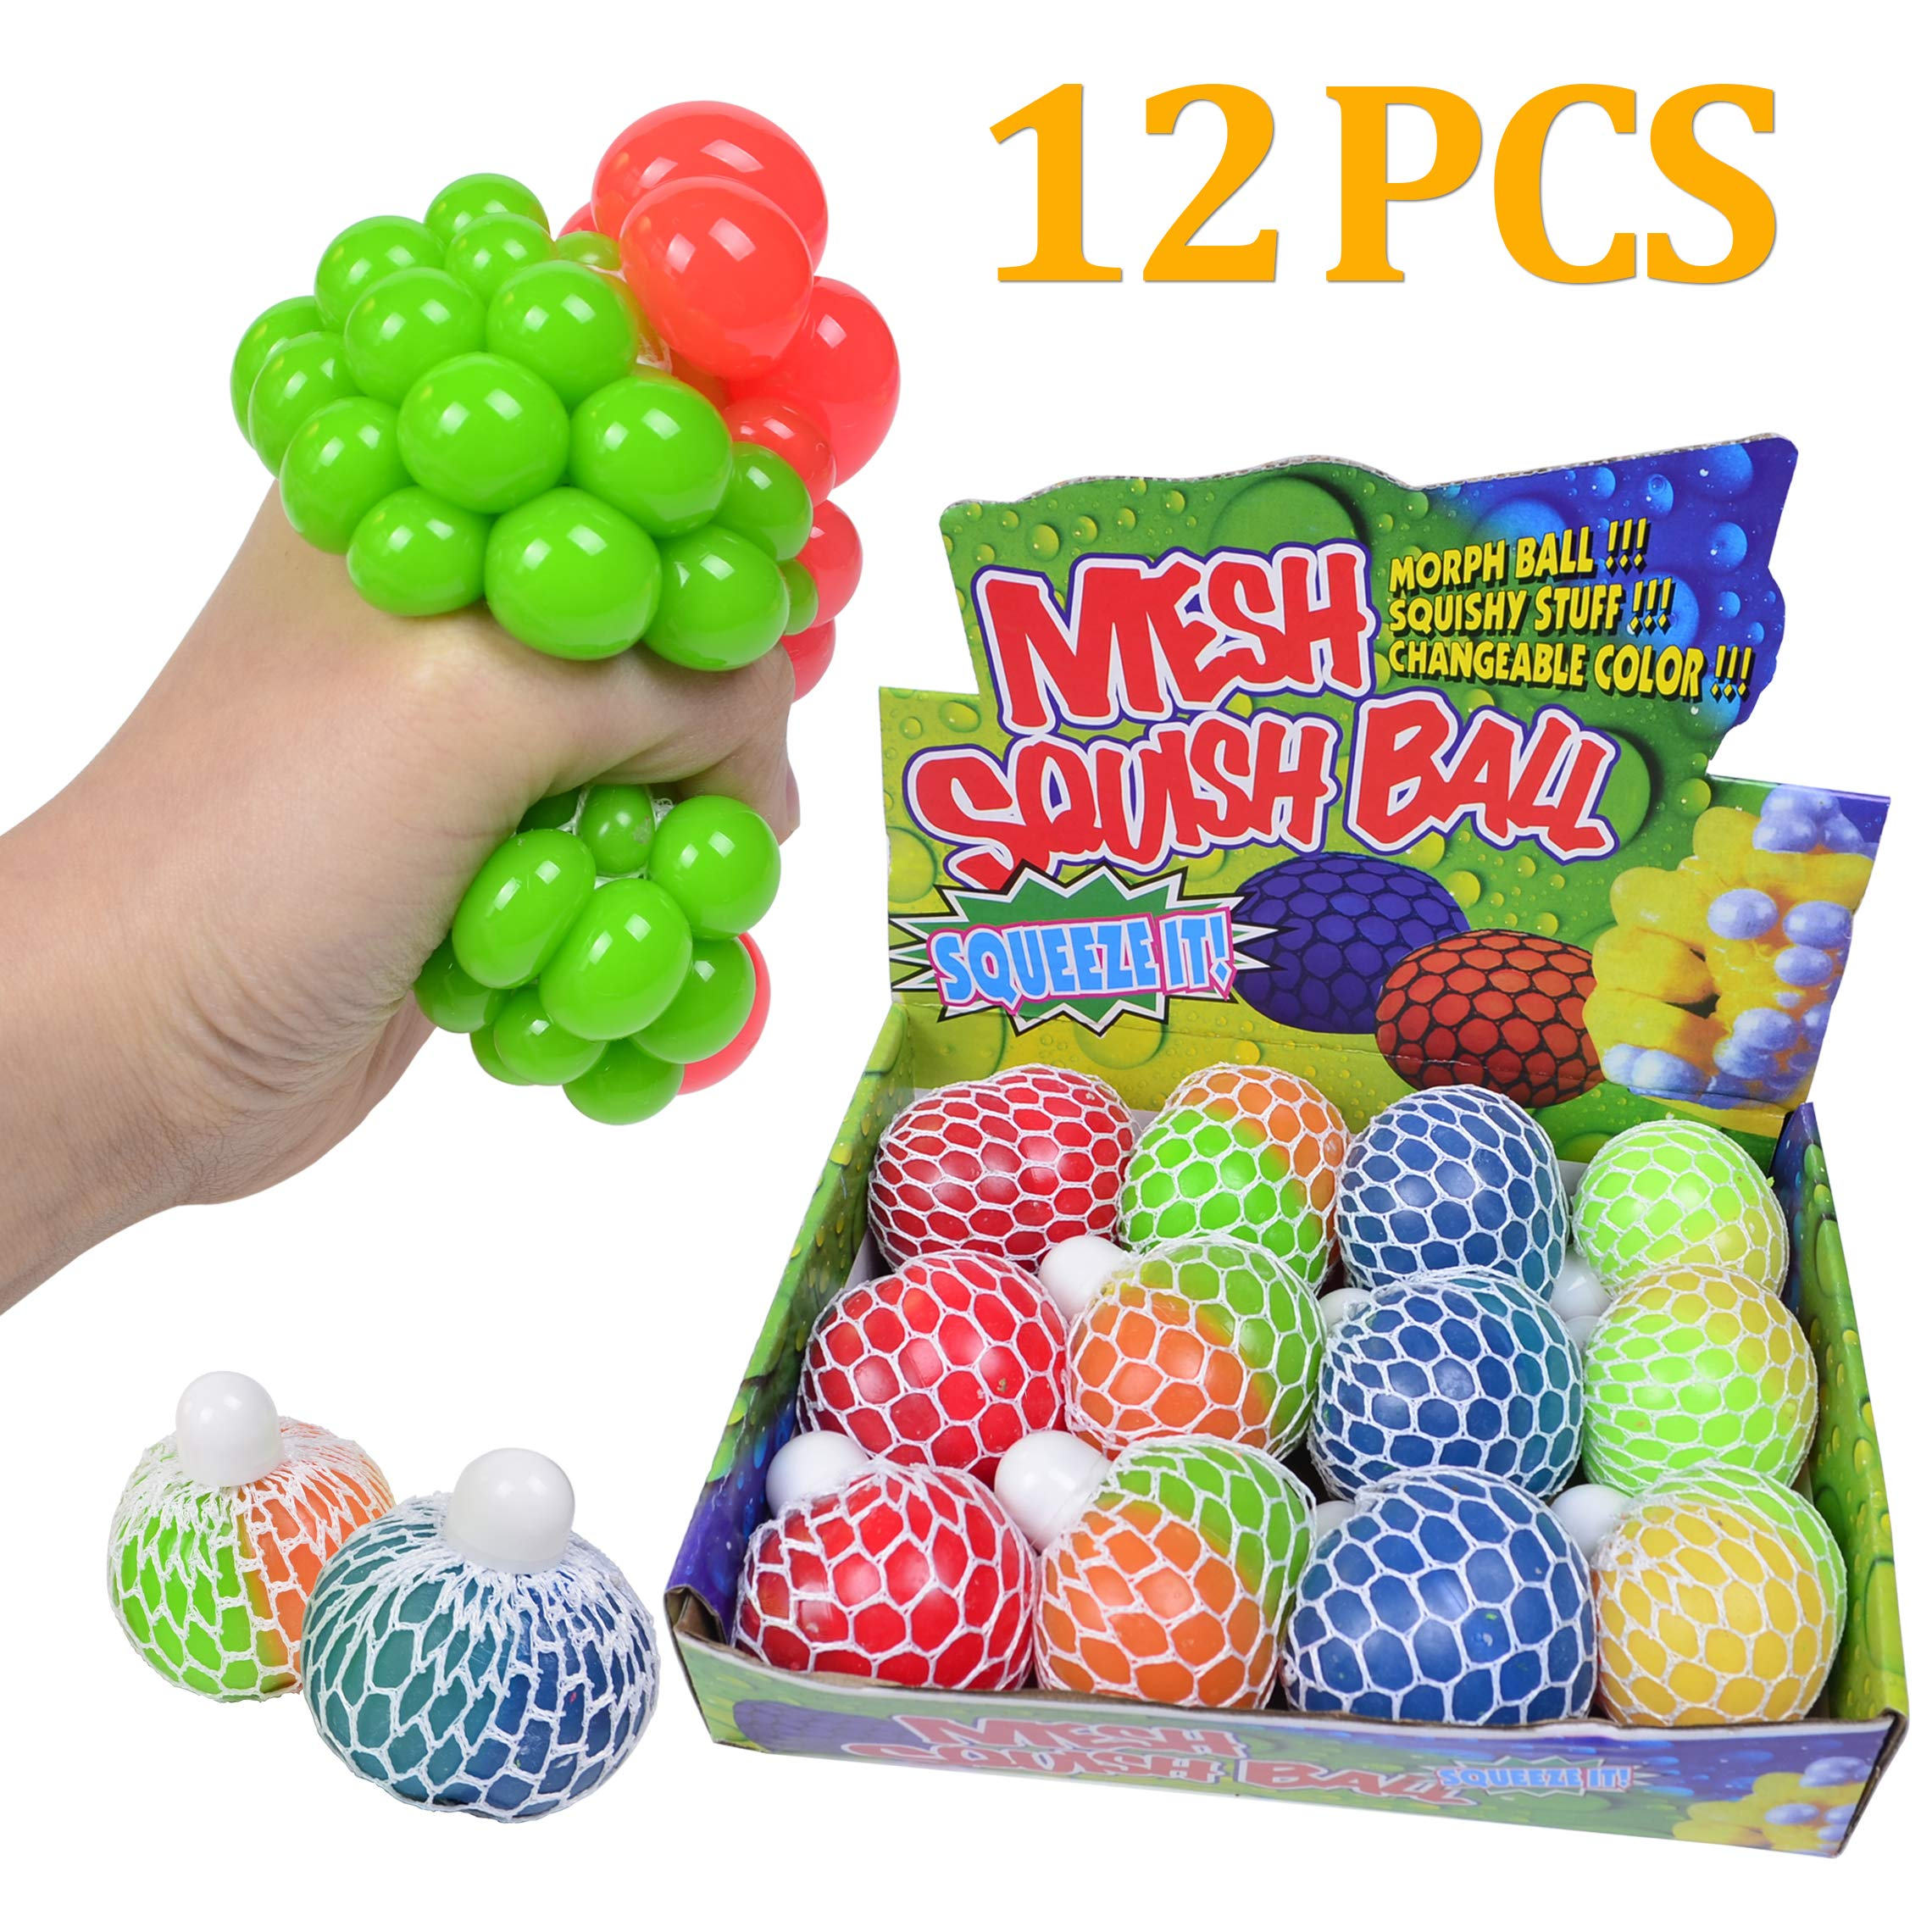 ZGWJ Anti-Stress Ball, 12 Pack Mesh Squishy Balls Stress Relief Toys Squeeze Grape Balls Relieve Pressure Balls Home and Office Use for Christmas Birthday Gift